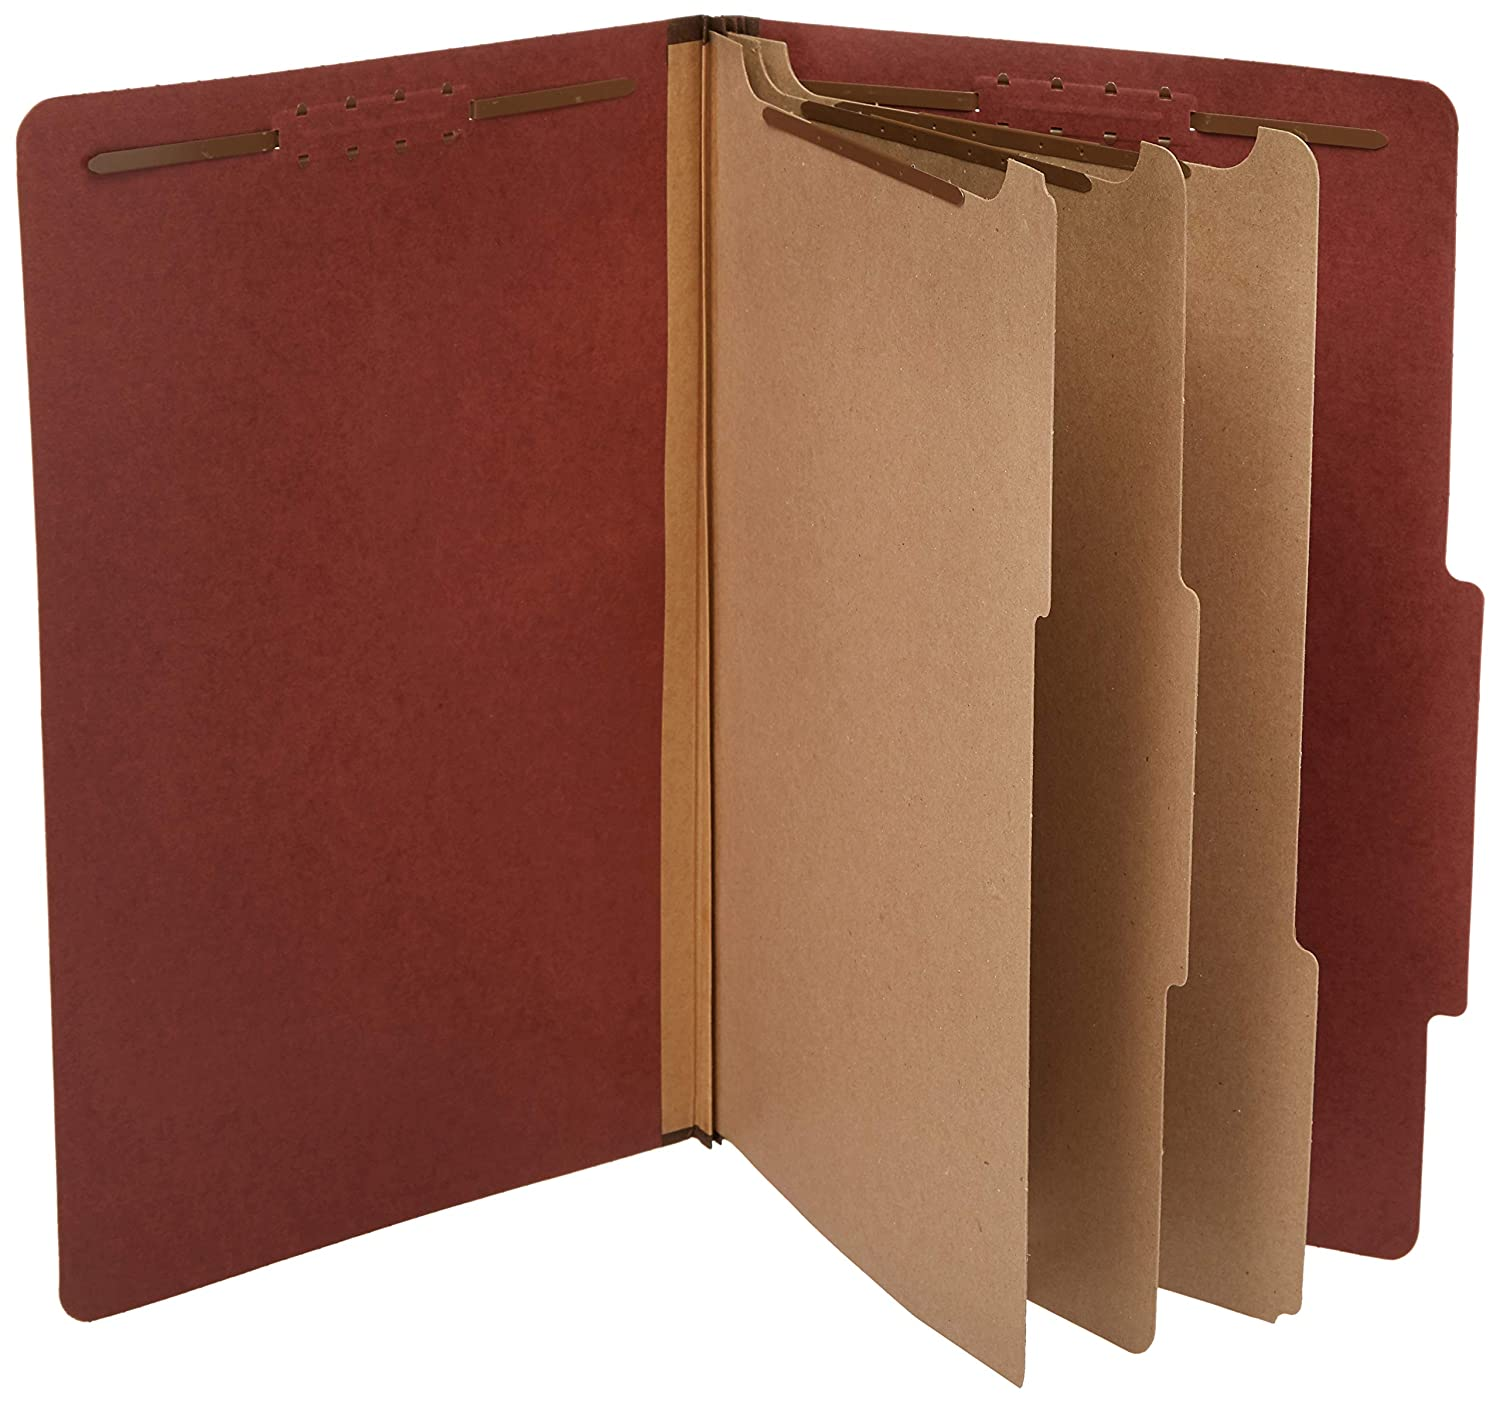 """AmazonBasics Pressboard Classification File Folder with Fasteners, 3 Divider, 3.5"""" Expansion, Legal Size, Red (10 Pack)"""